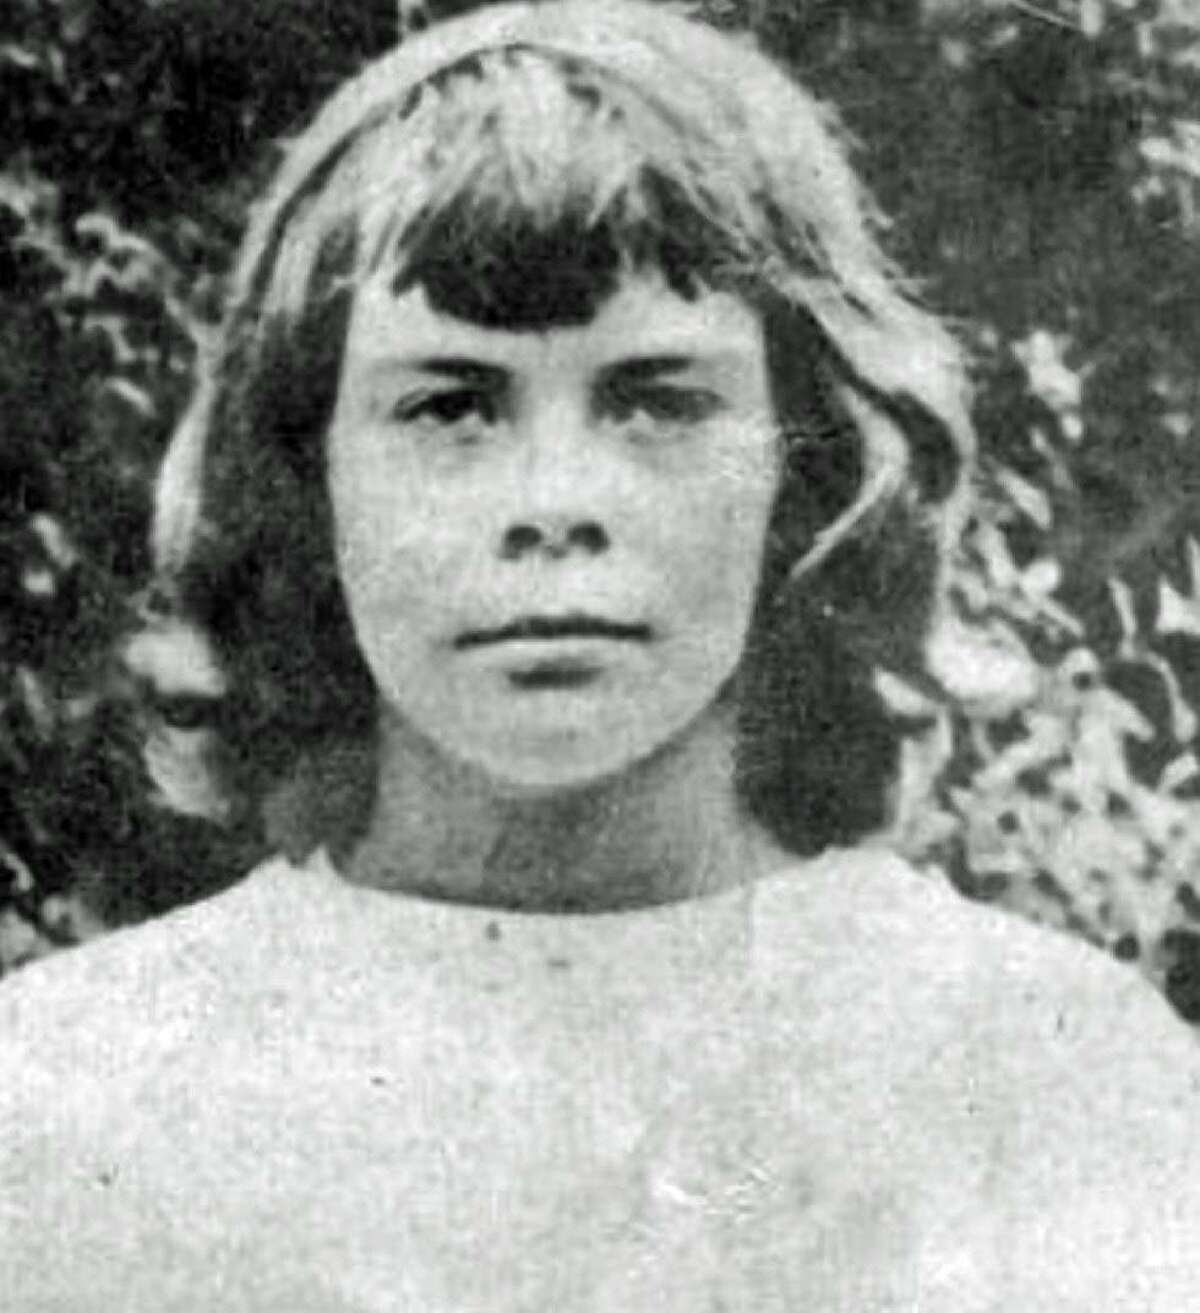 A detail of a photo was shown of 10-year-old Connie Smith, who disappeared July 16, 1952, and was not seen since. Smith had been a summer camper at Camp Sloane at 124 Indian Mountain Road in Lakeville. A former Wyoming Governor's granddaughter, Smith was last seen at the intersection of Route 44 and Belgo Road after she had decided to walk to Lakeville from the camp. Smith's disappearance prompted a national search and the largest manhunt in Connecticut history.